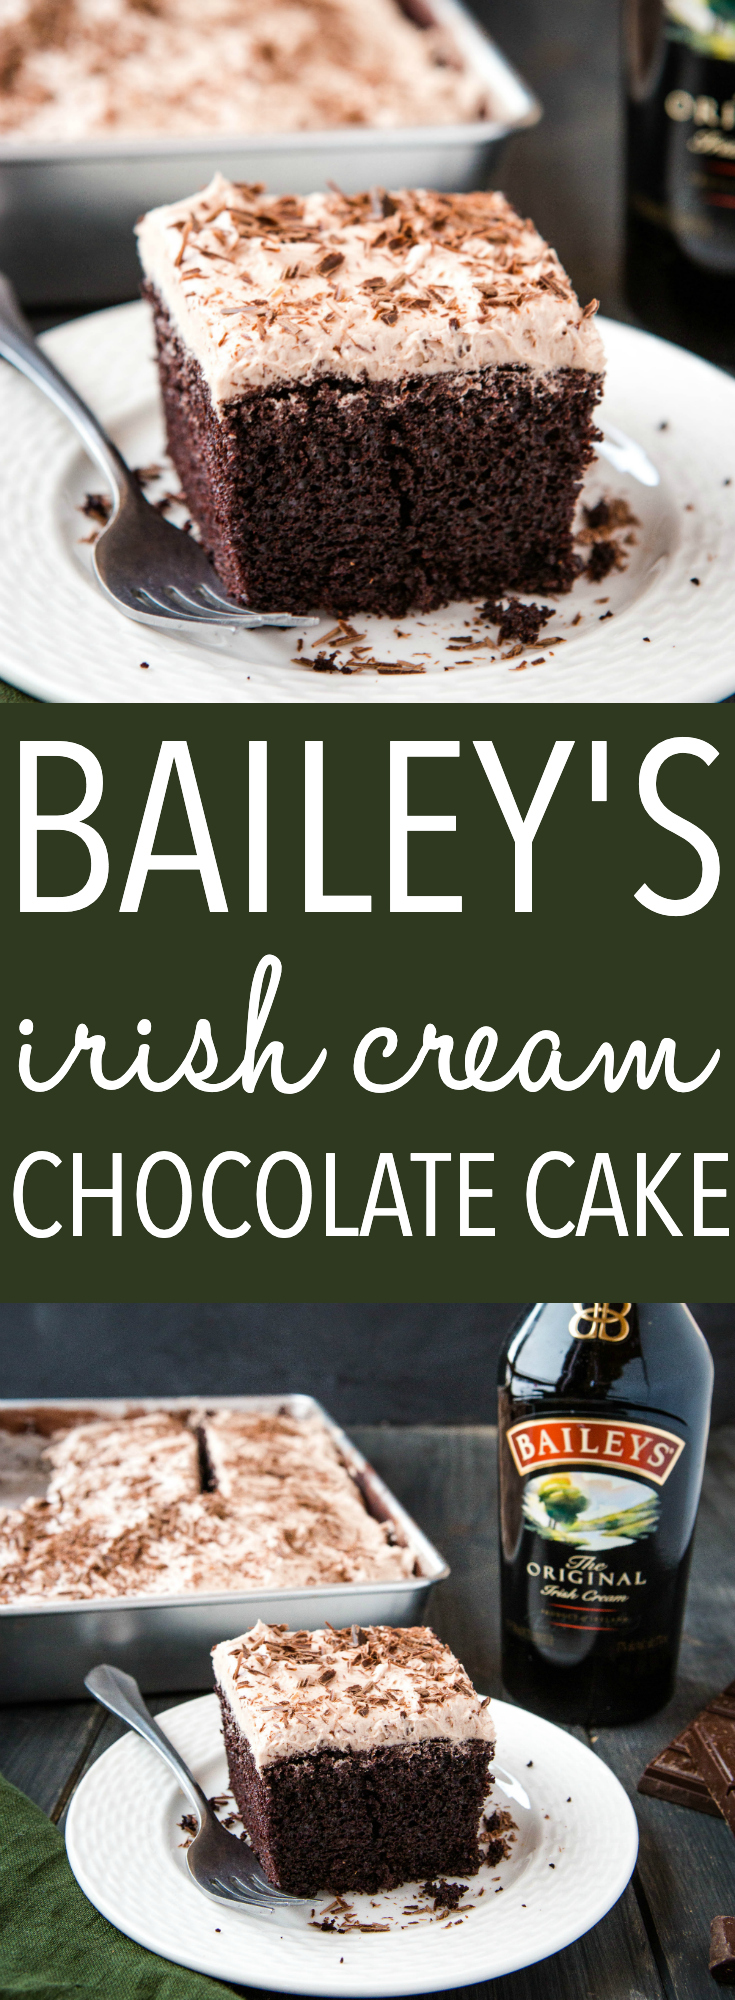 Baileys Chocolate Cake is moist and delicious, infused with Irish cream and Bailey's frosting on top. Make this St. Patrick's Day dessert! Recipe from thebusybaker.ca! #baileys #irishcream #stpatricksday #dessert #cake #chocolatecake #chocolate #indulge #buttercream #irishcreamfrosting #cakerecipe via @busybakerblog